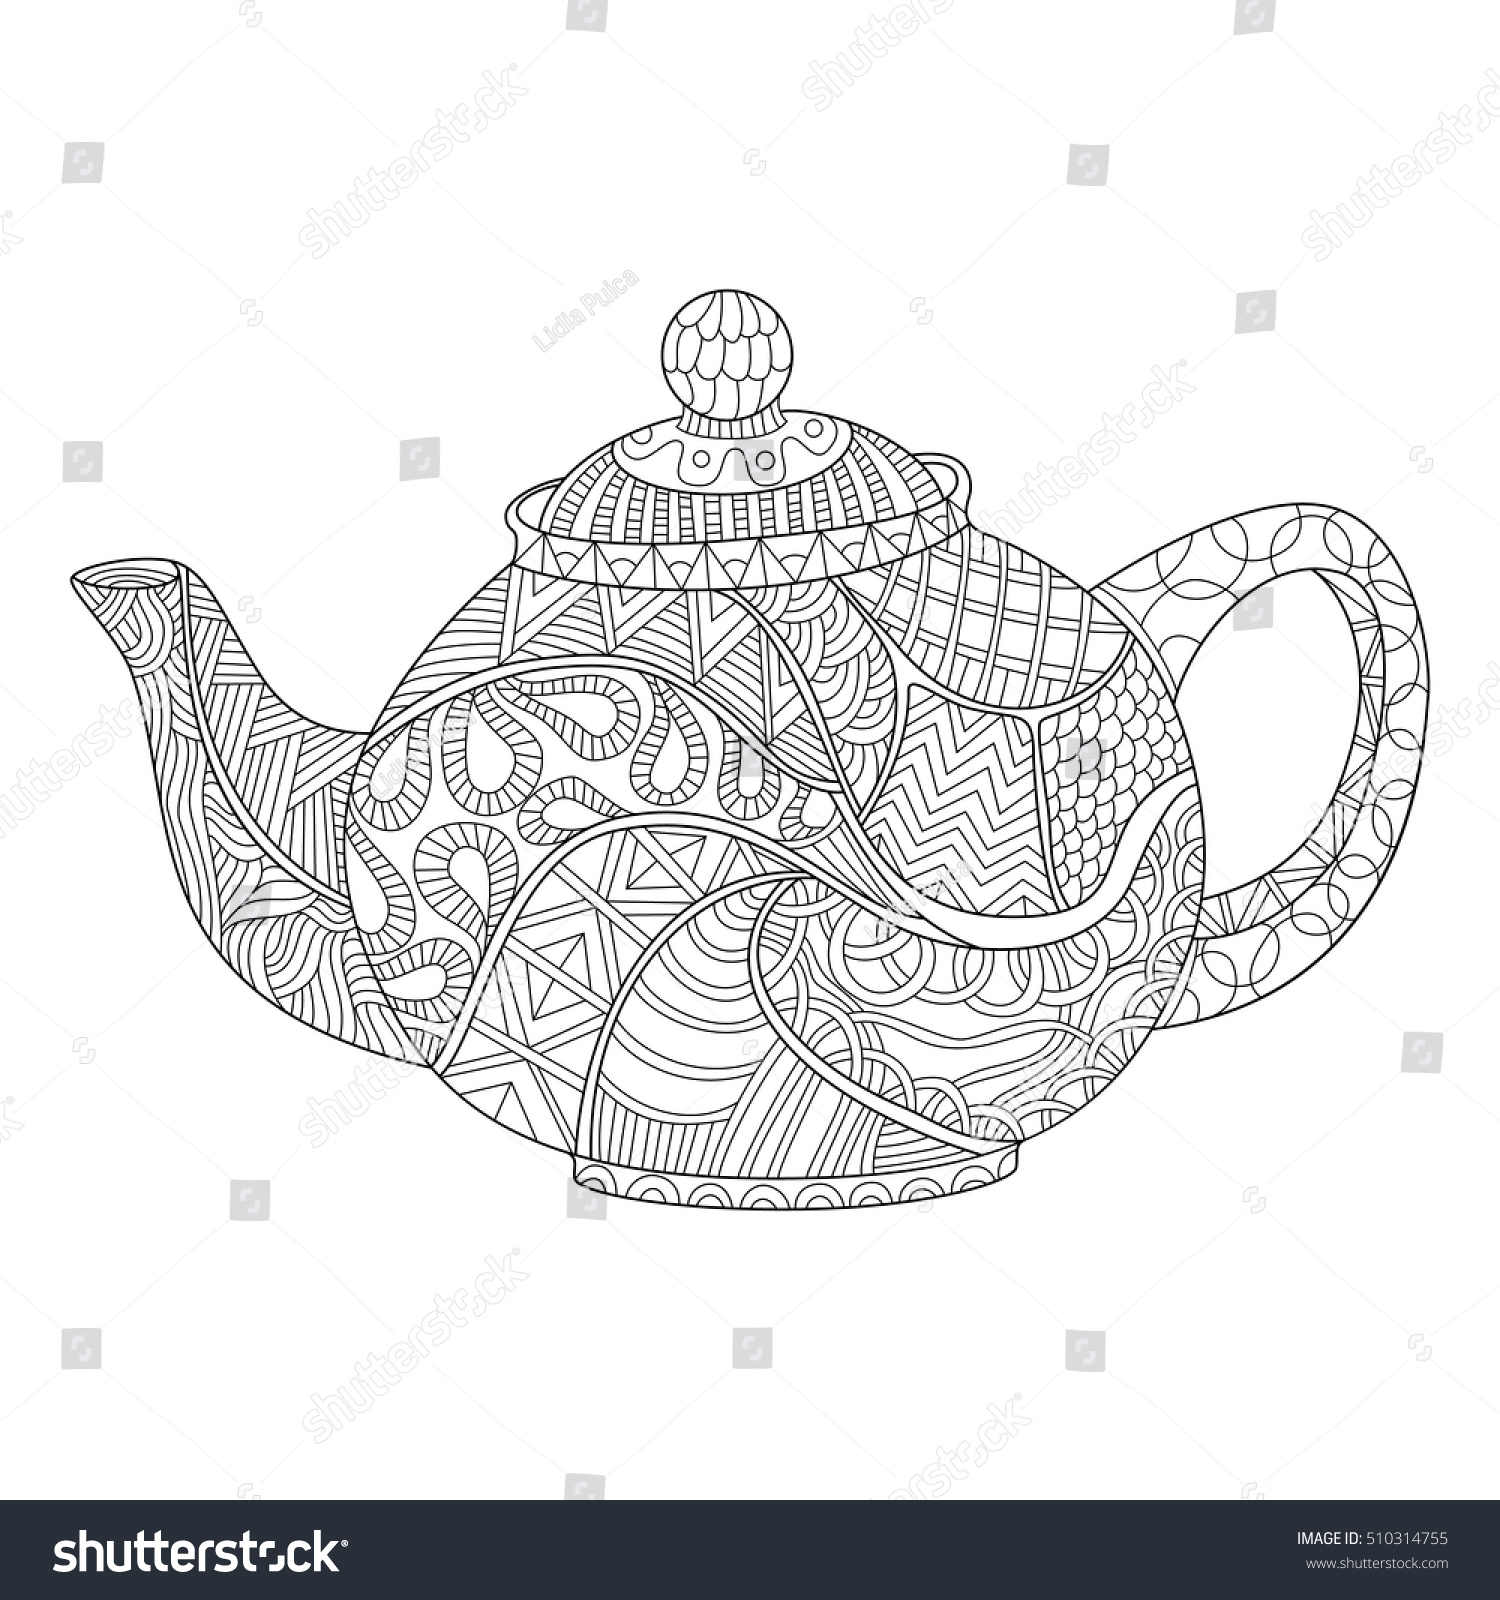 Teapot Coloring Page Adults Zentangle Style Stock Vector 510314755